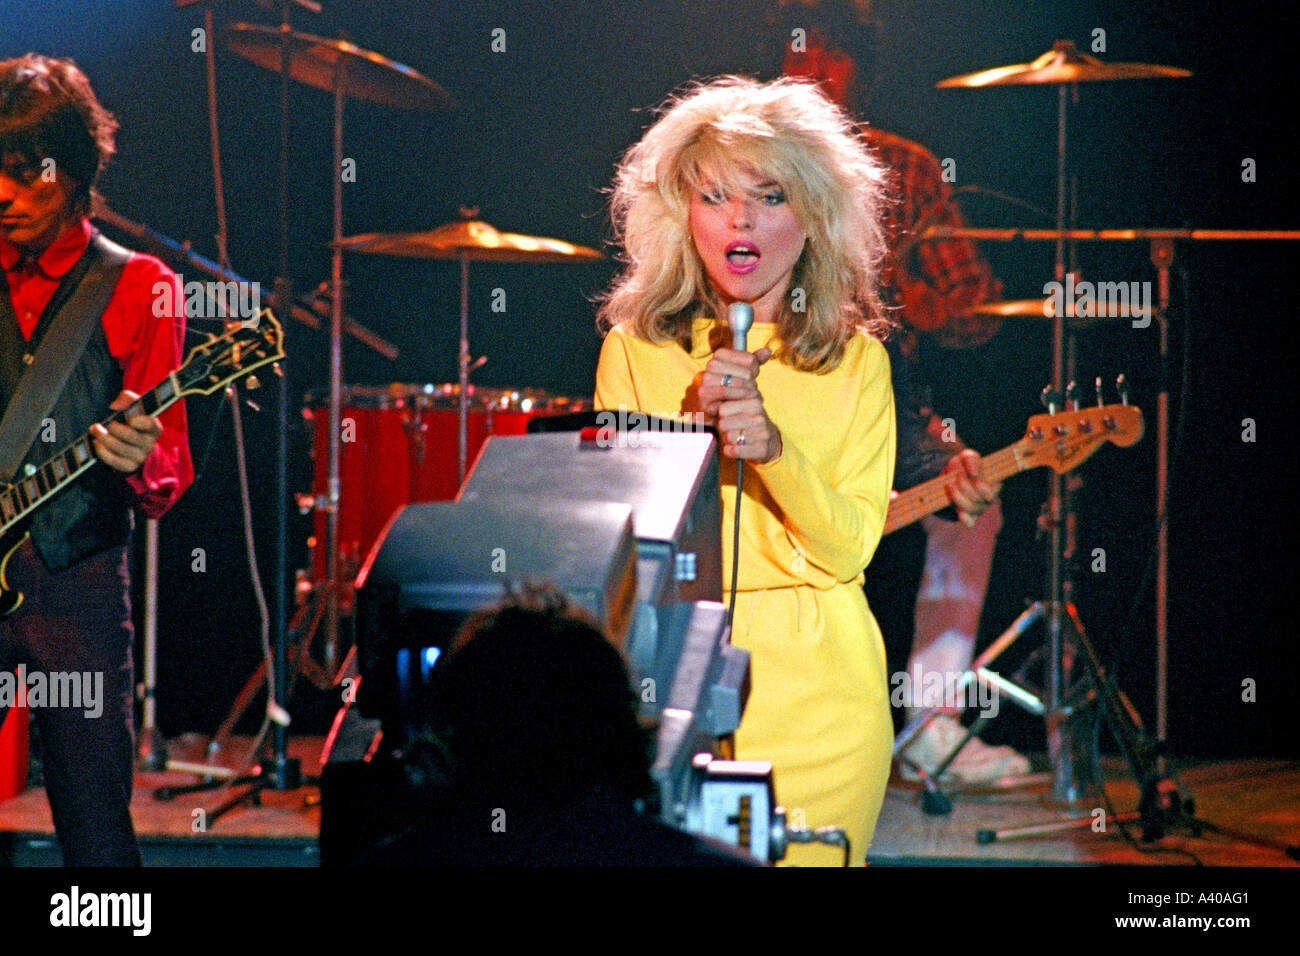 Debbie Harry of pop group Blondie performing Picture This PER0120 - Stock Image